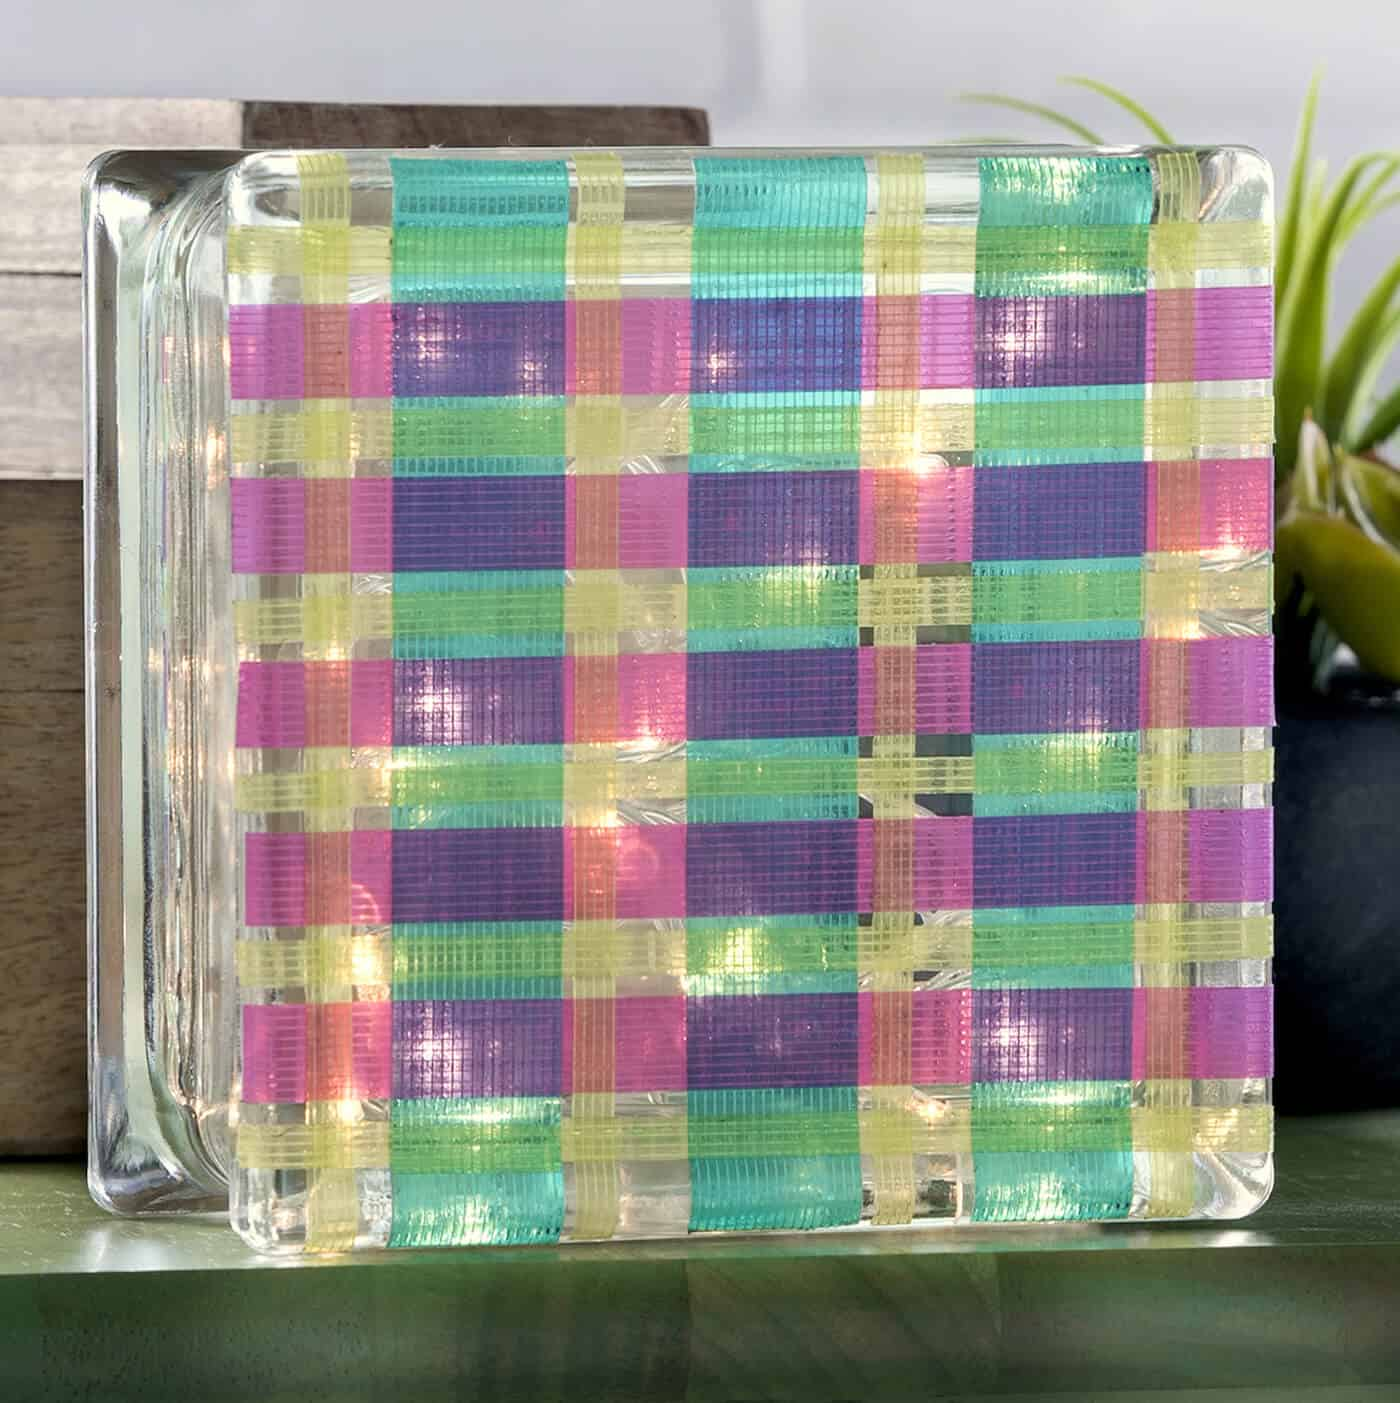 Glass block crafts are so fun and easy! Grab your Duck Tape and glass block from the craft store and make this simple plaid lamp. Perfect for a kids' room!